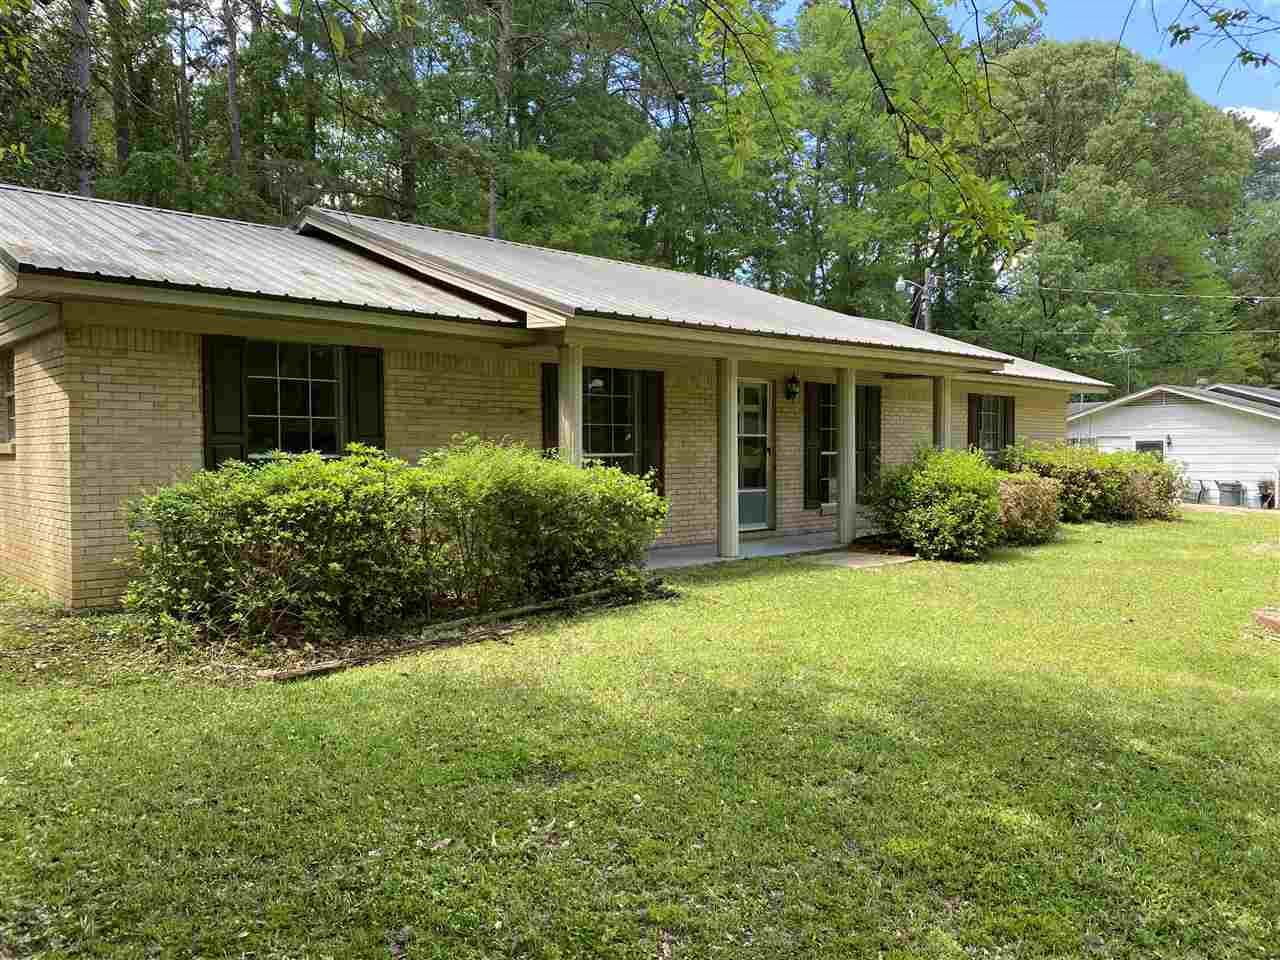 510 WALLACE ST, Mendenhall, MS 39114 - MLS#: 339694